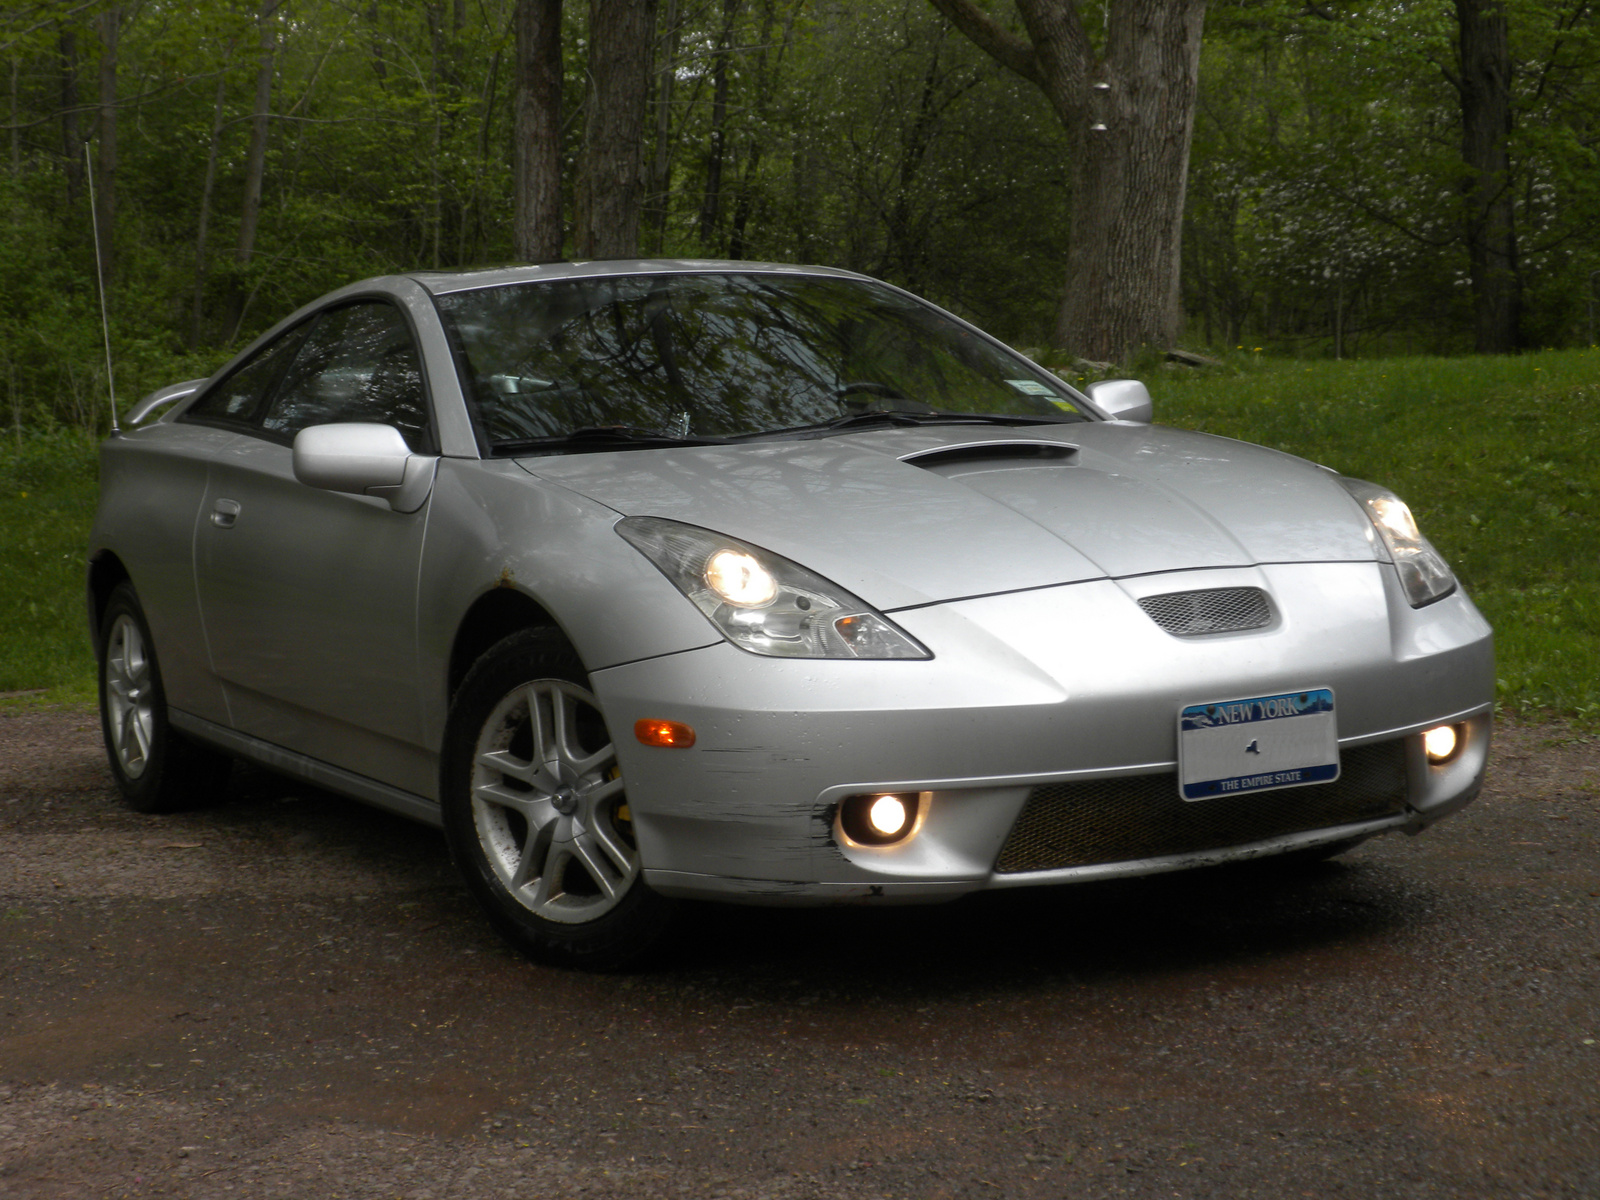 2000 toyota celica exterior pictures cargurus. Black Bedroom Furniture Sets. Home Design Ideas